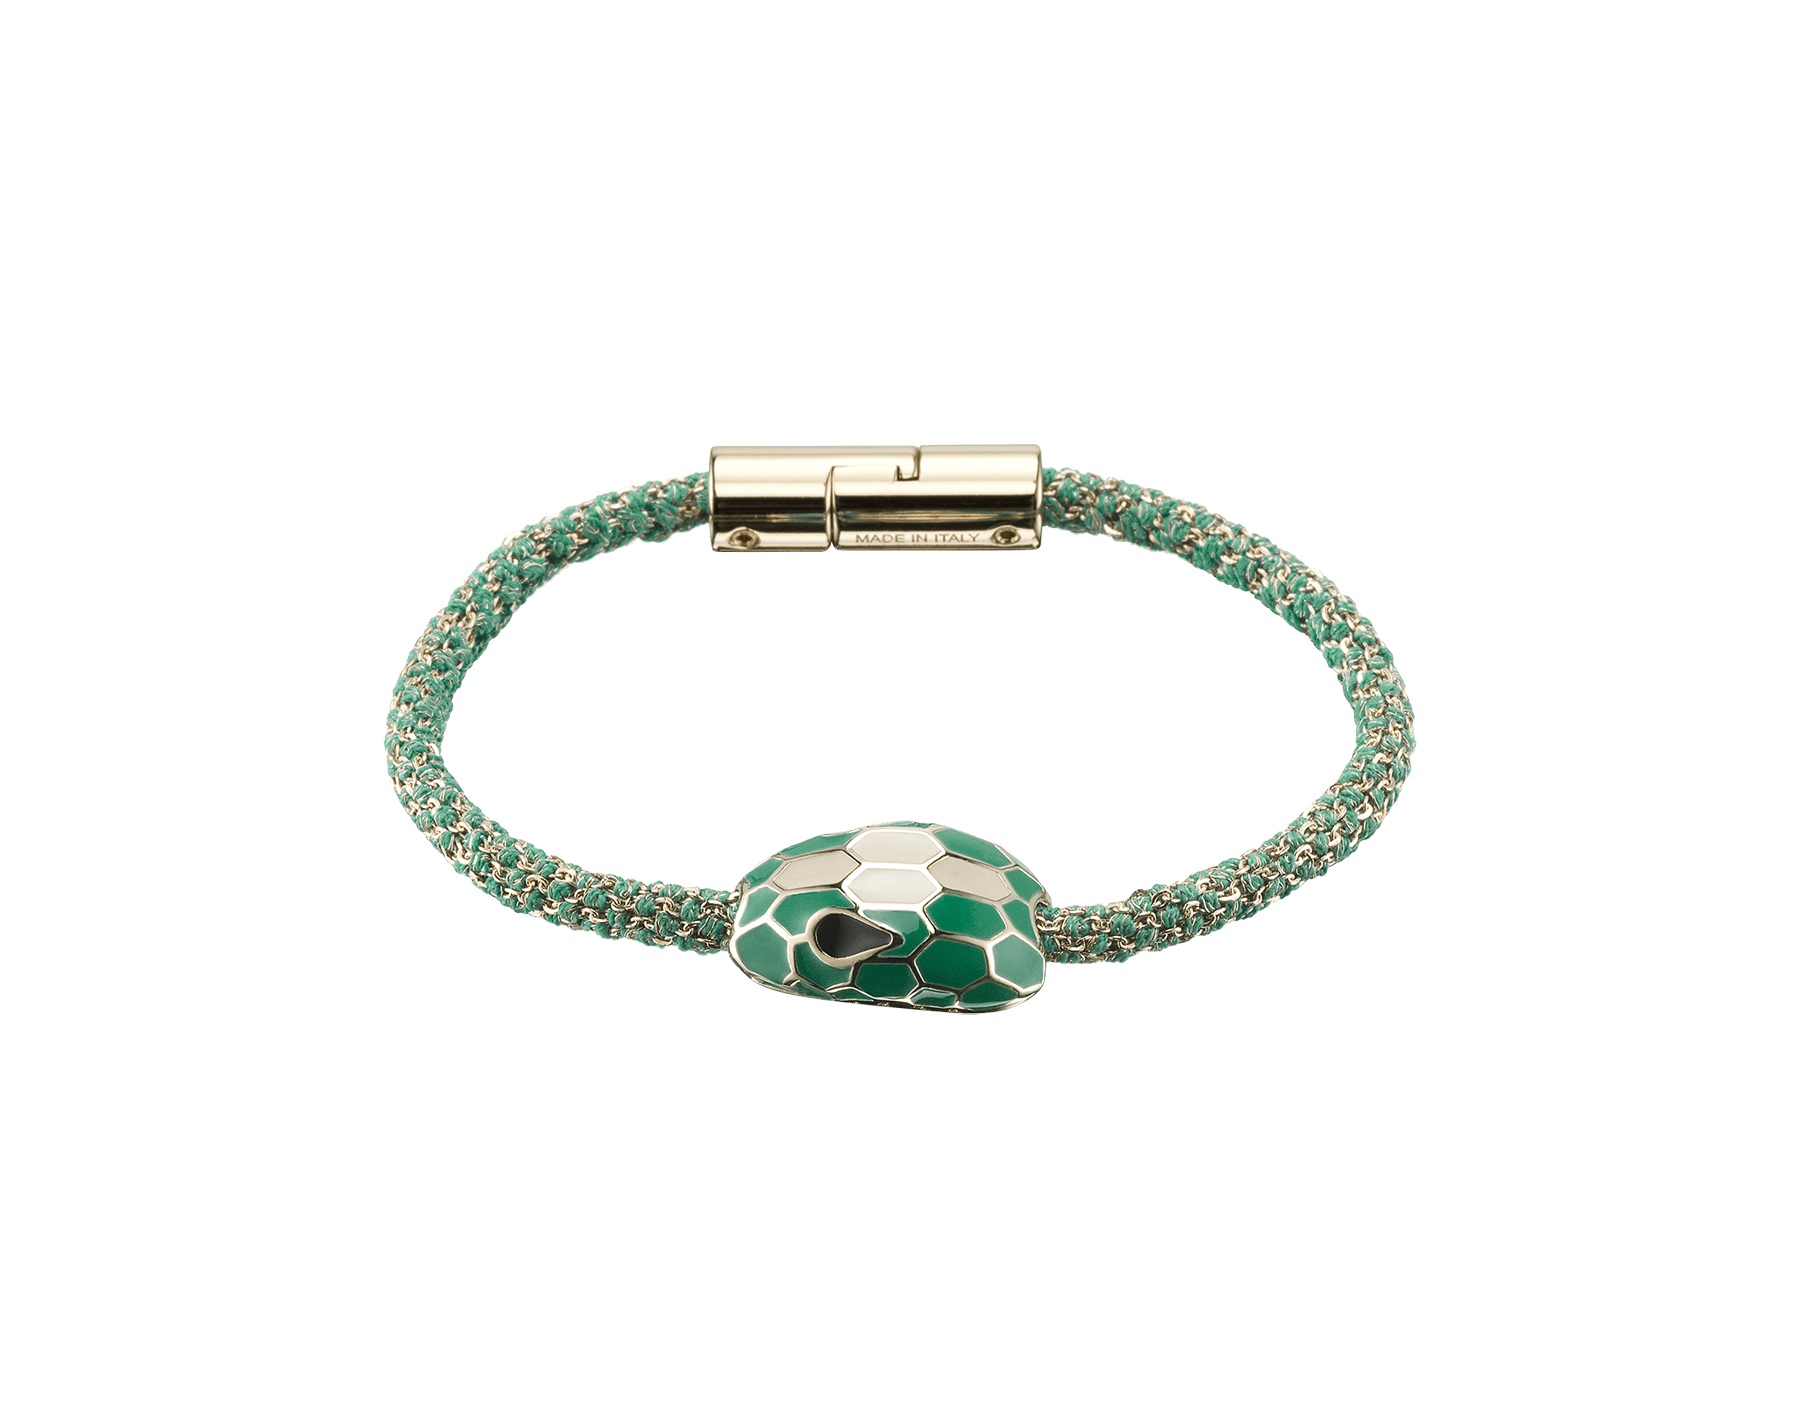 Serpenti Forever bracelet in emerald green metallic woven silk with an iconic snake head décor in white and emerald green enamel. RollingChain-S-EG image 2